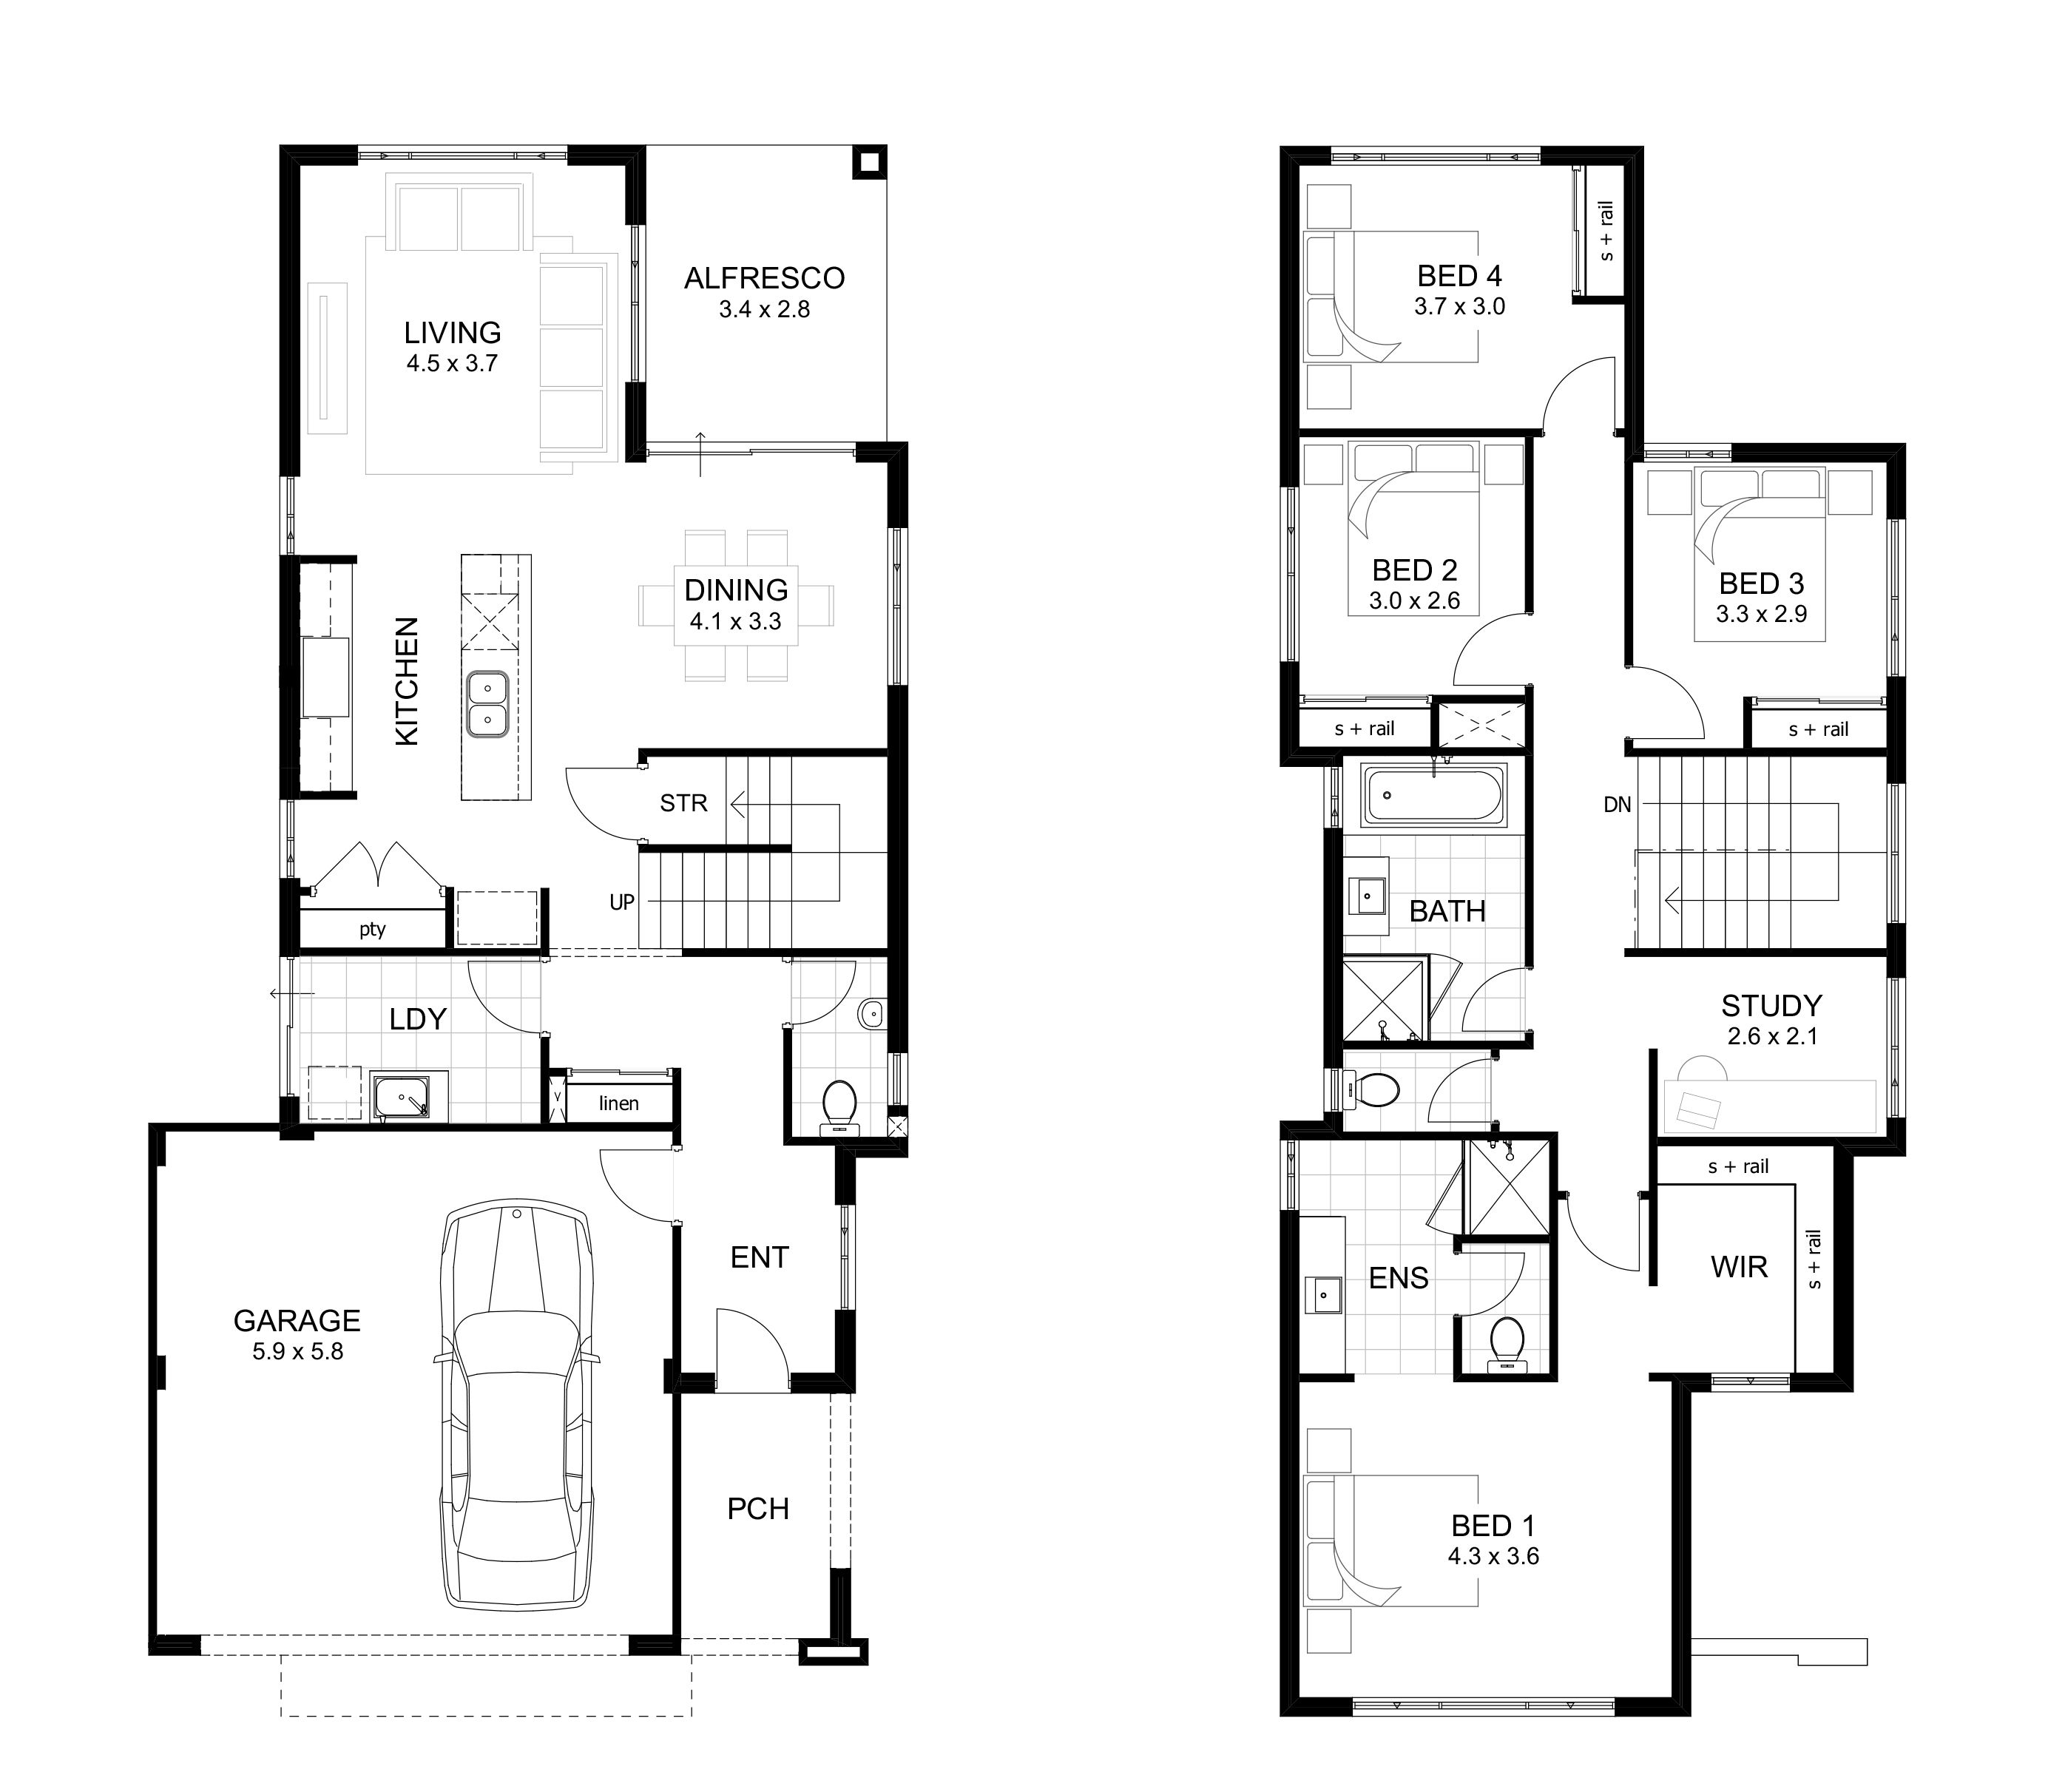 Home Designs Perth Apg Homes Double Storey House Plans 4 Bedroom House Plans Double Storey House